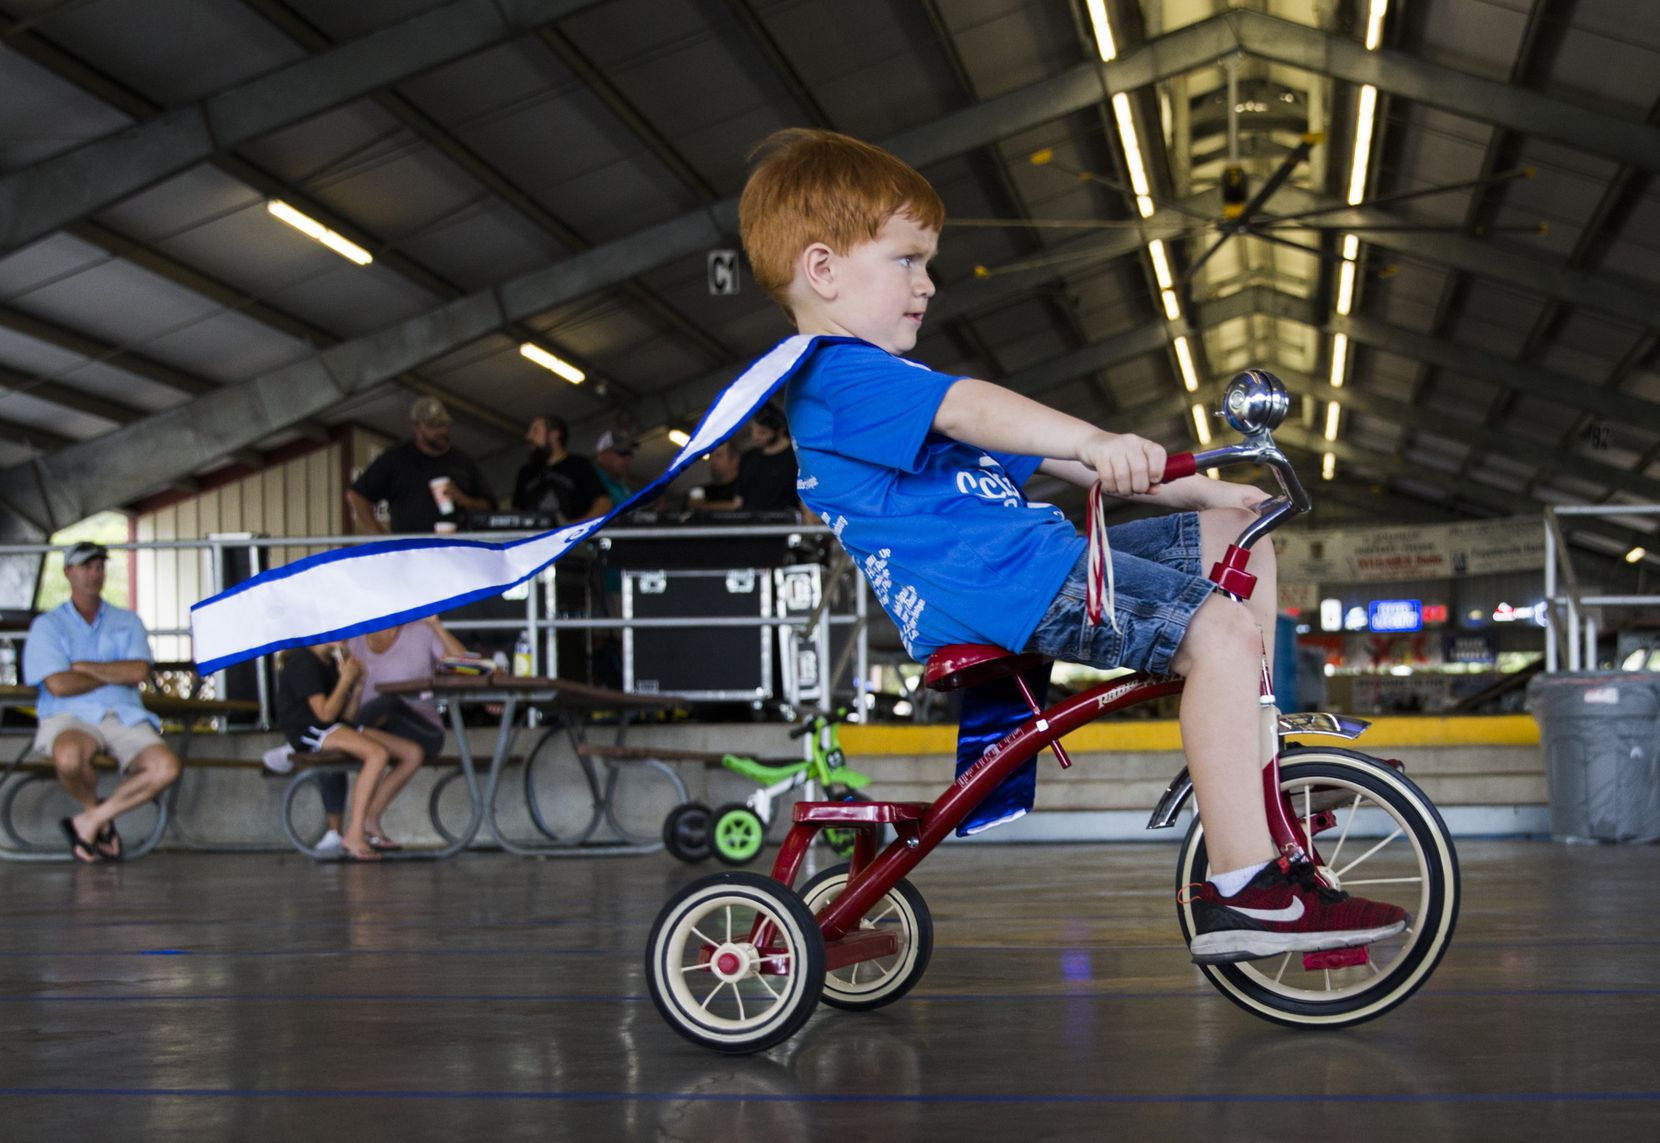 Little Mister Schulenburg Clay Hoffman, 4, participates in the tricycle races during the 2018 Schulenburg Festival on August 4, 2018 at Walters Park in Schulengburg, Texas.